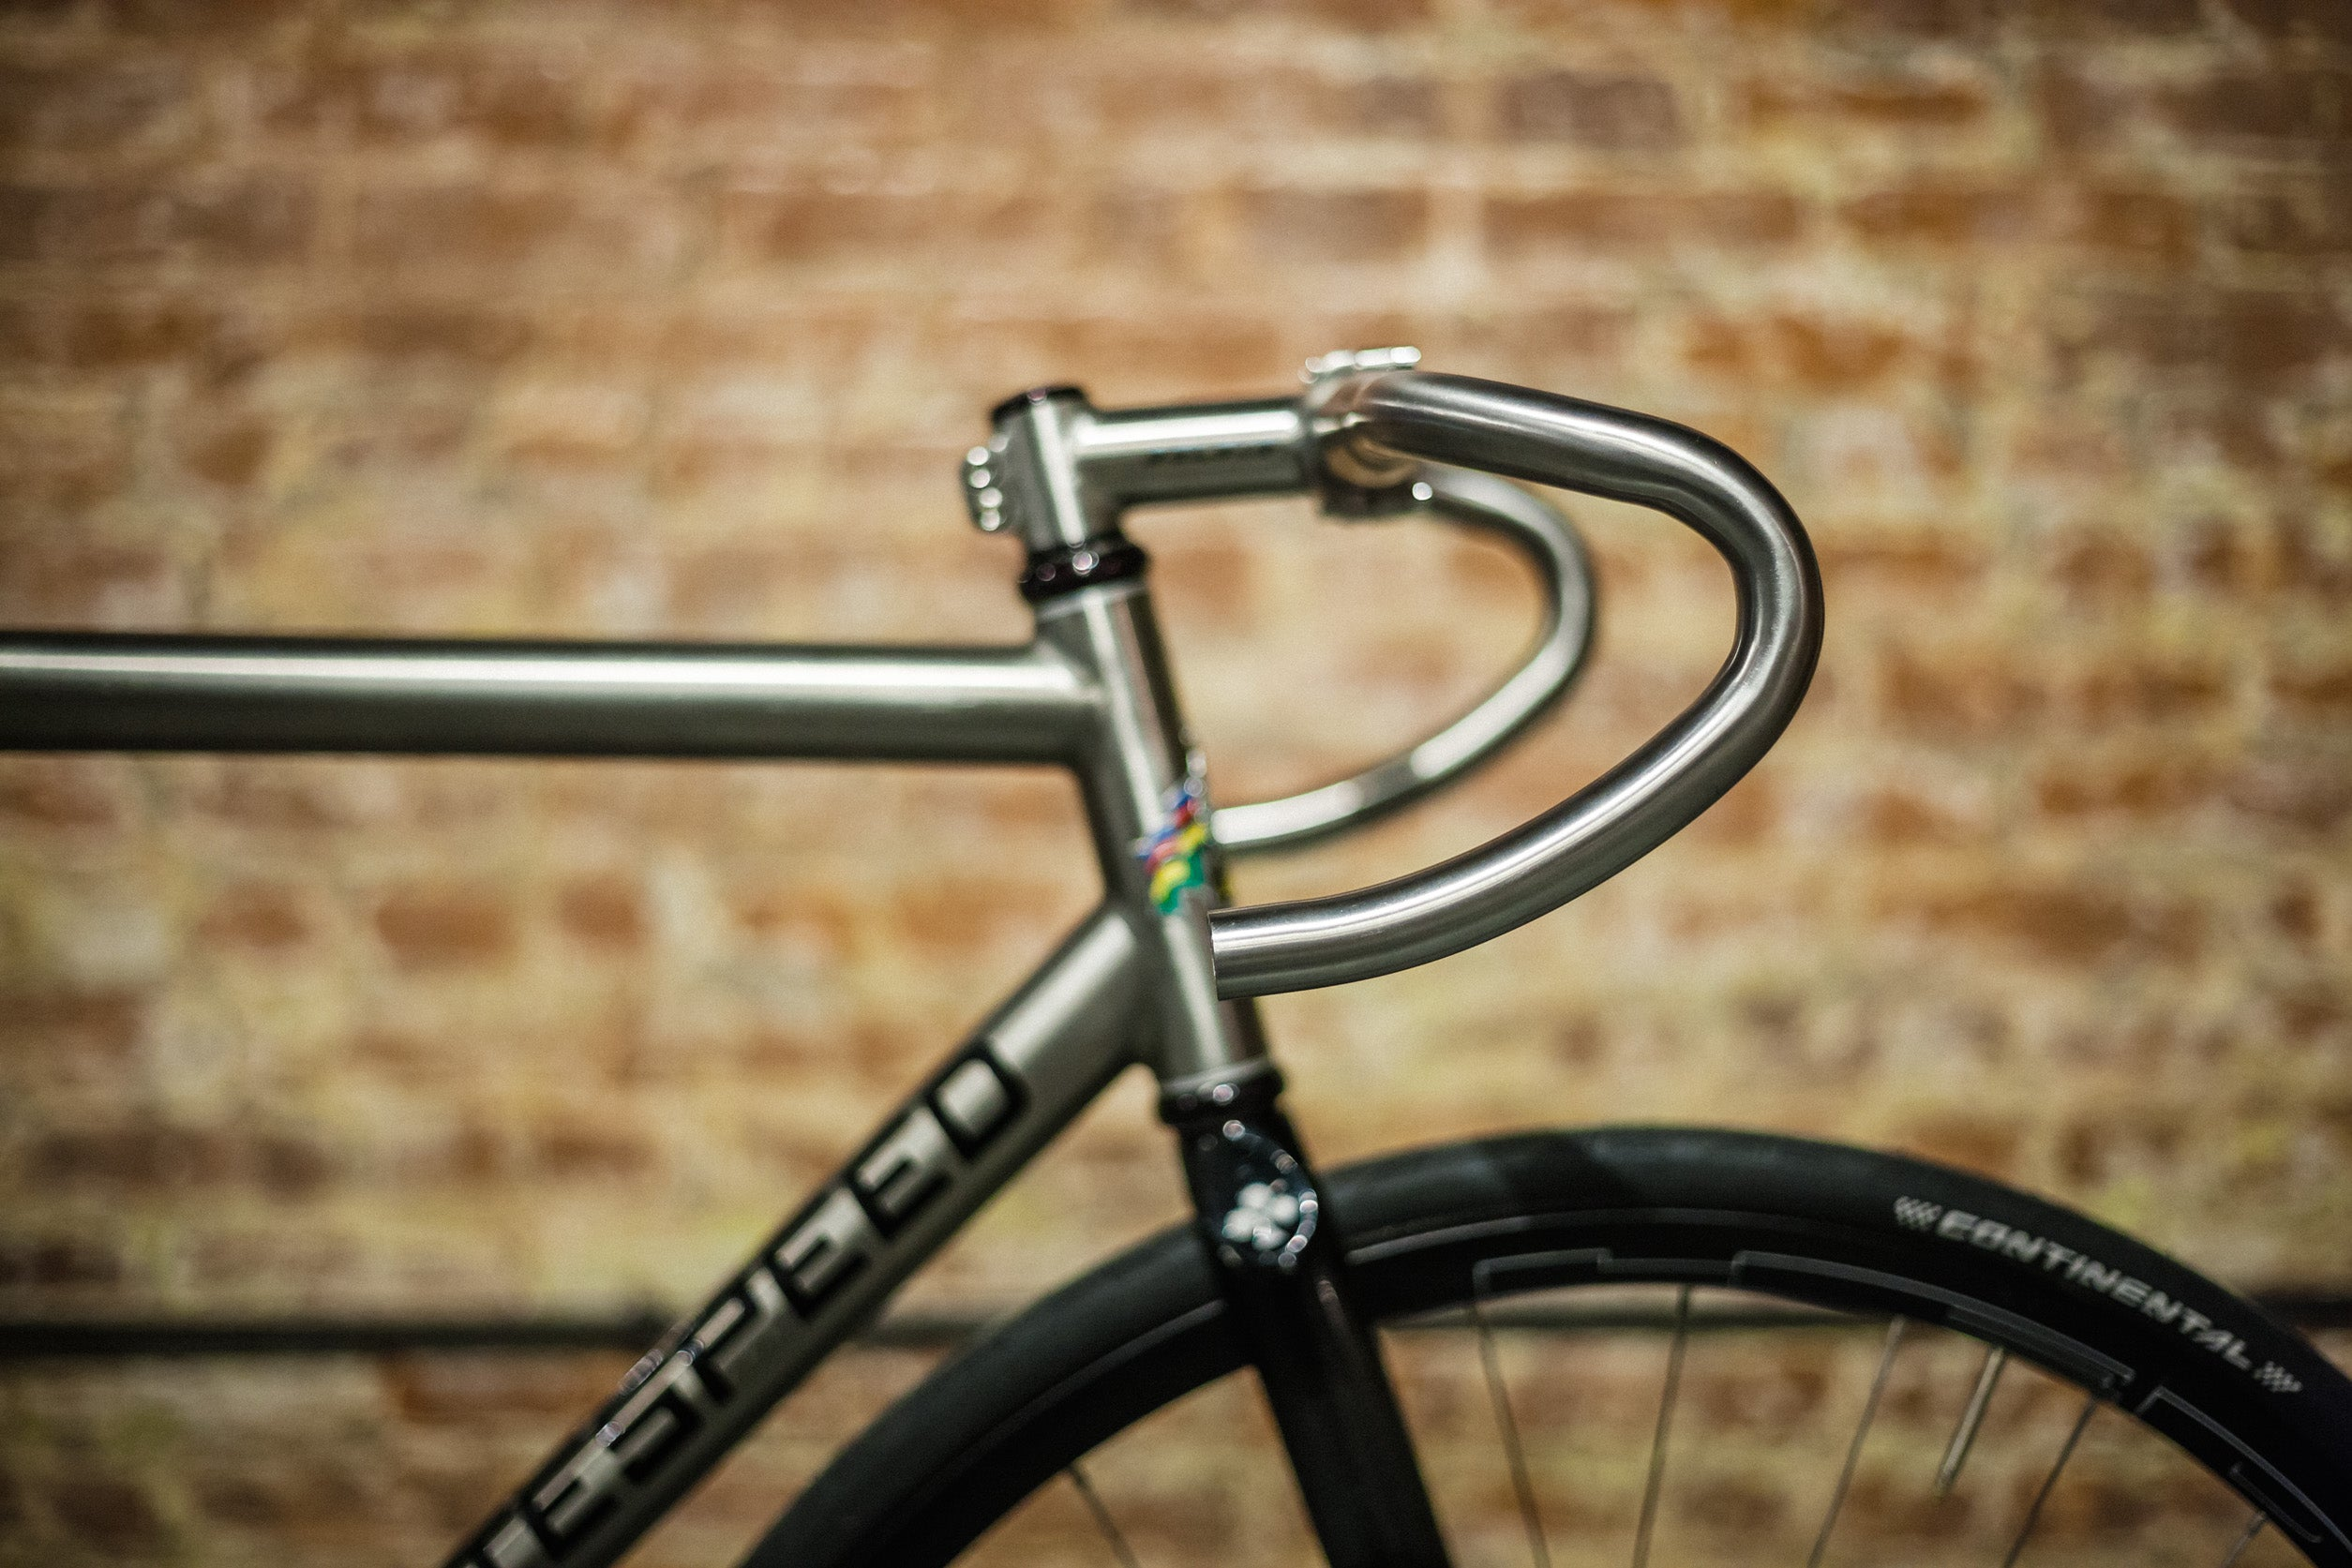 Deluxe Ti Compact Drop Handlebars